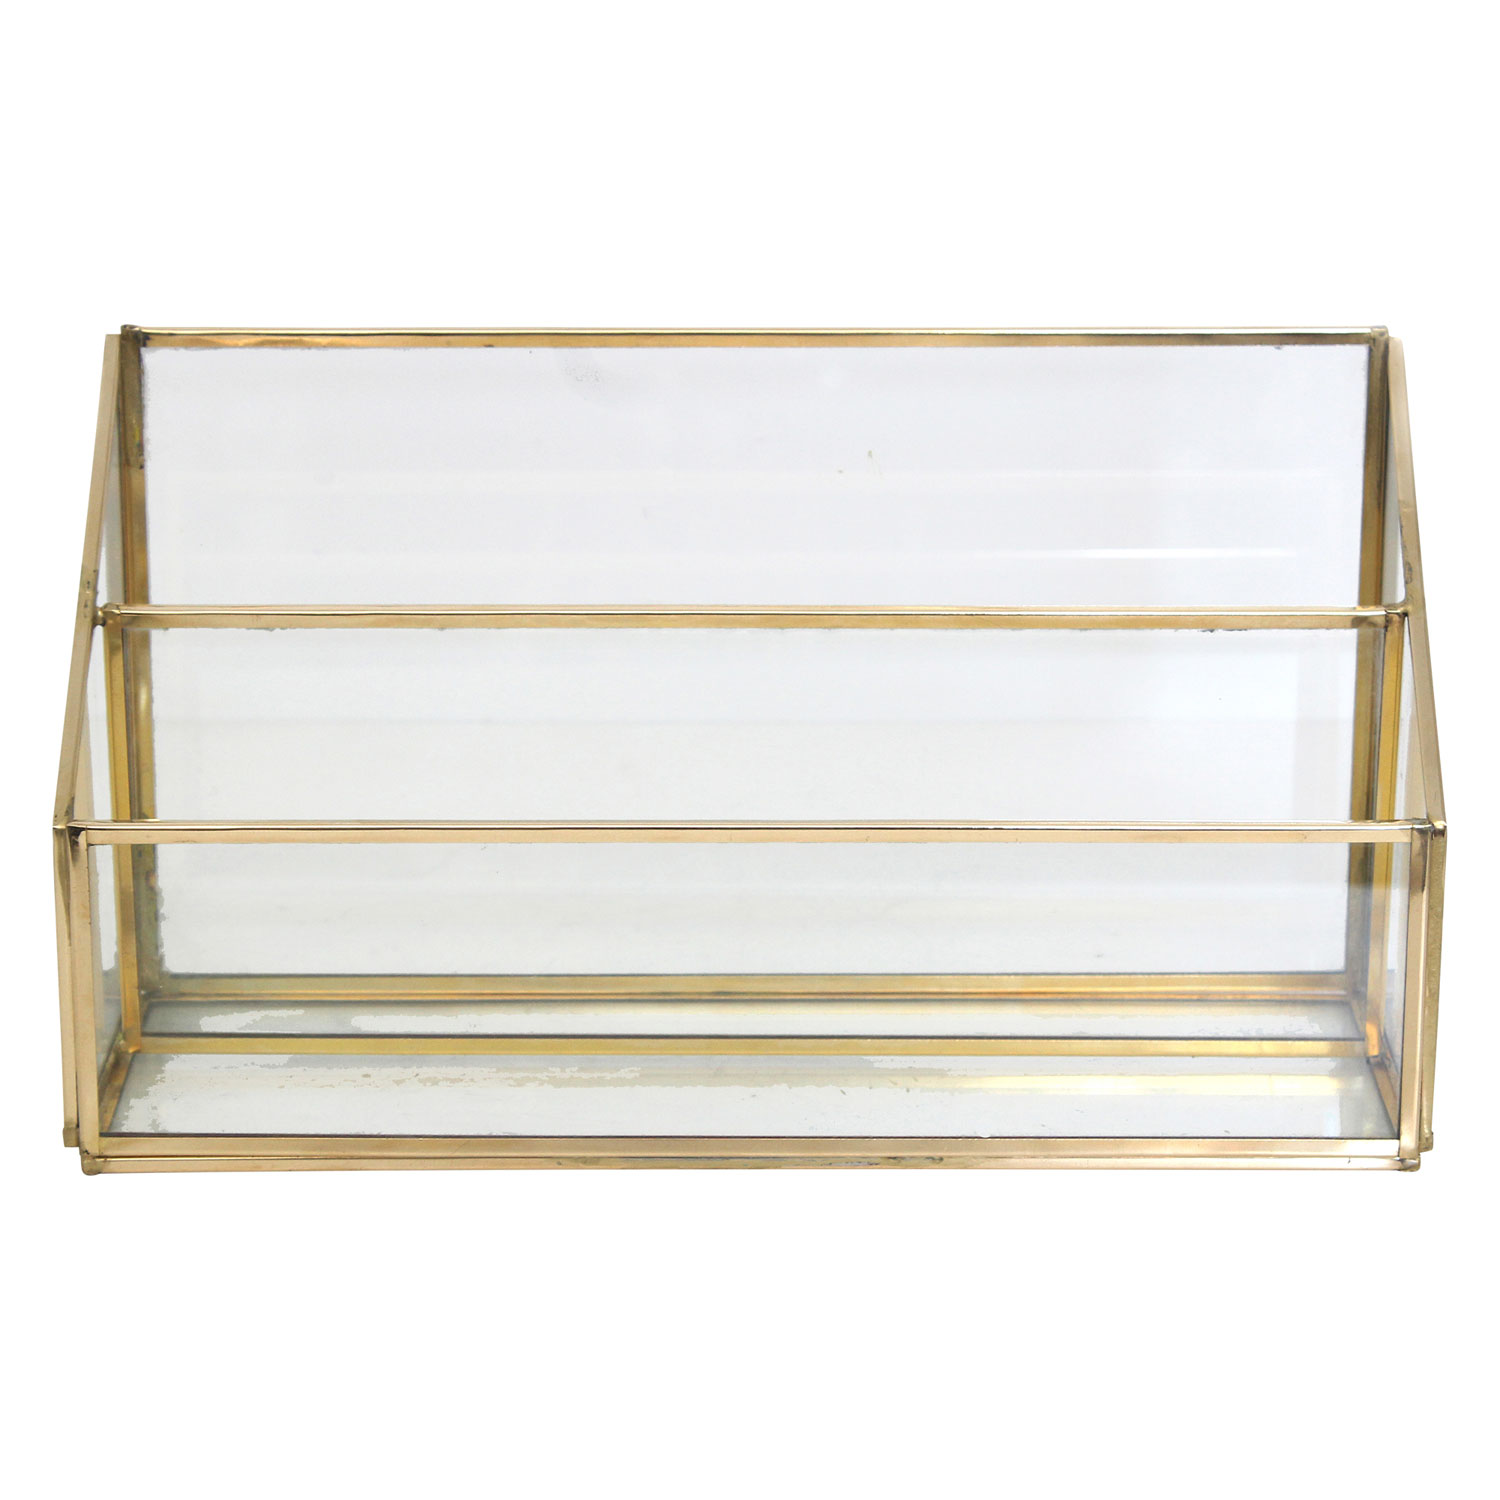 Office & Desk Accessories Category